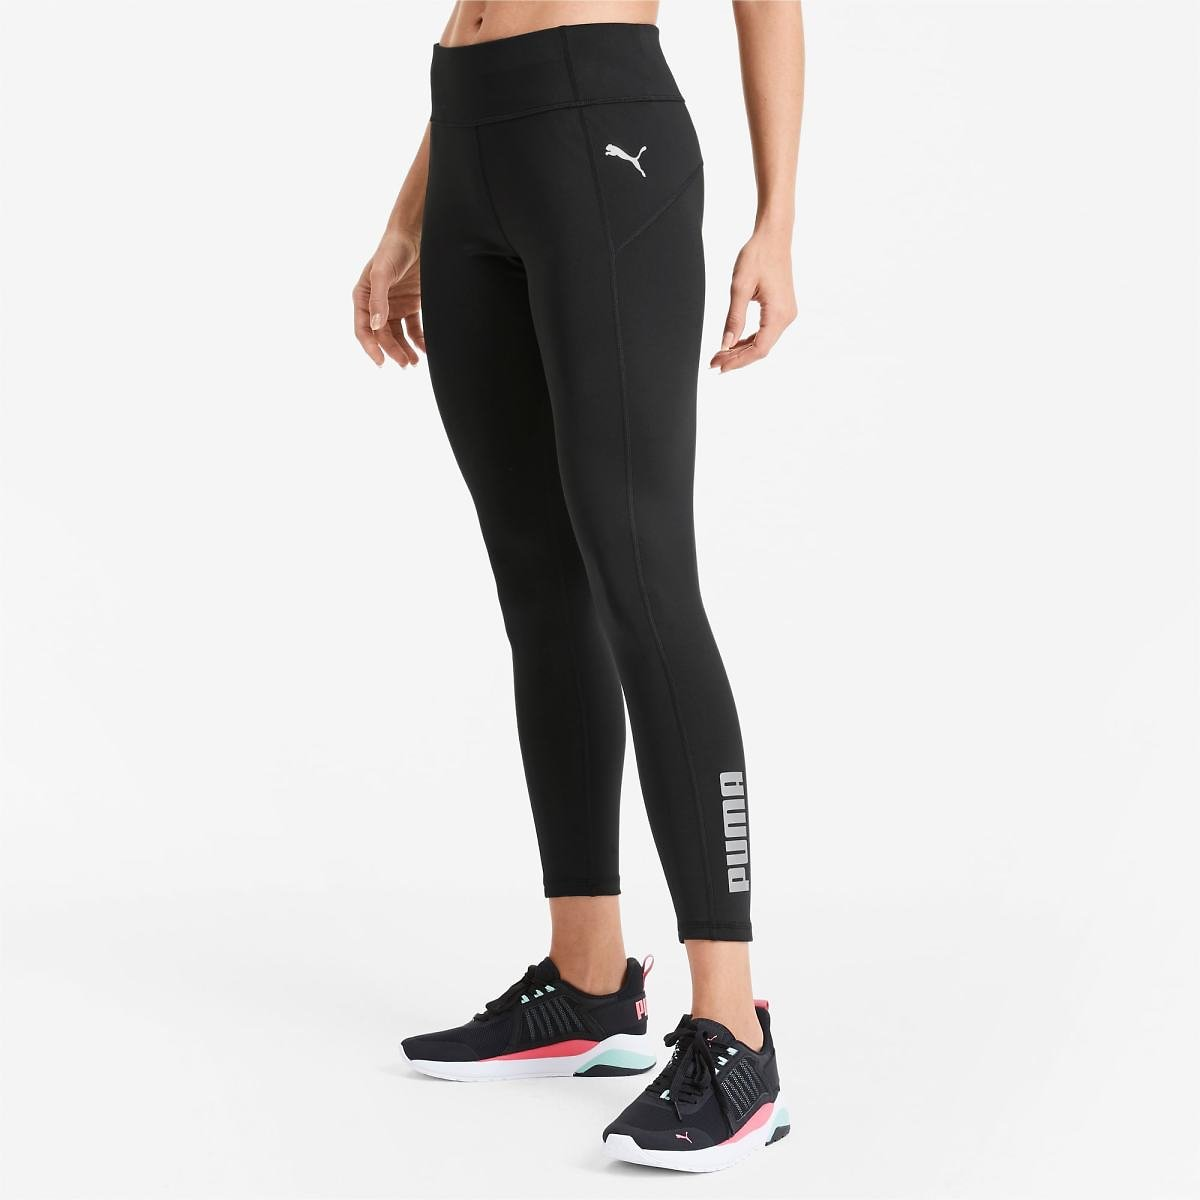 RTG Women's 7/8 Logo Leggings (3 Colors)